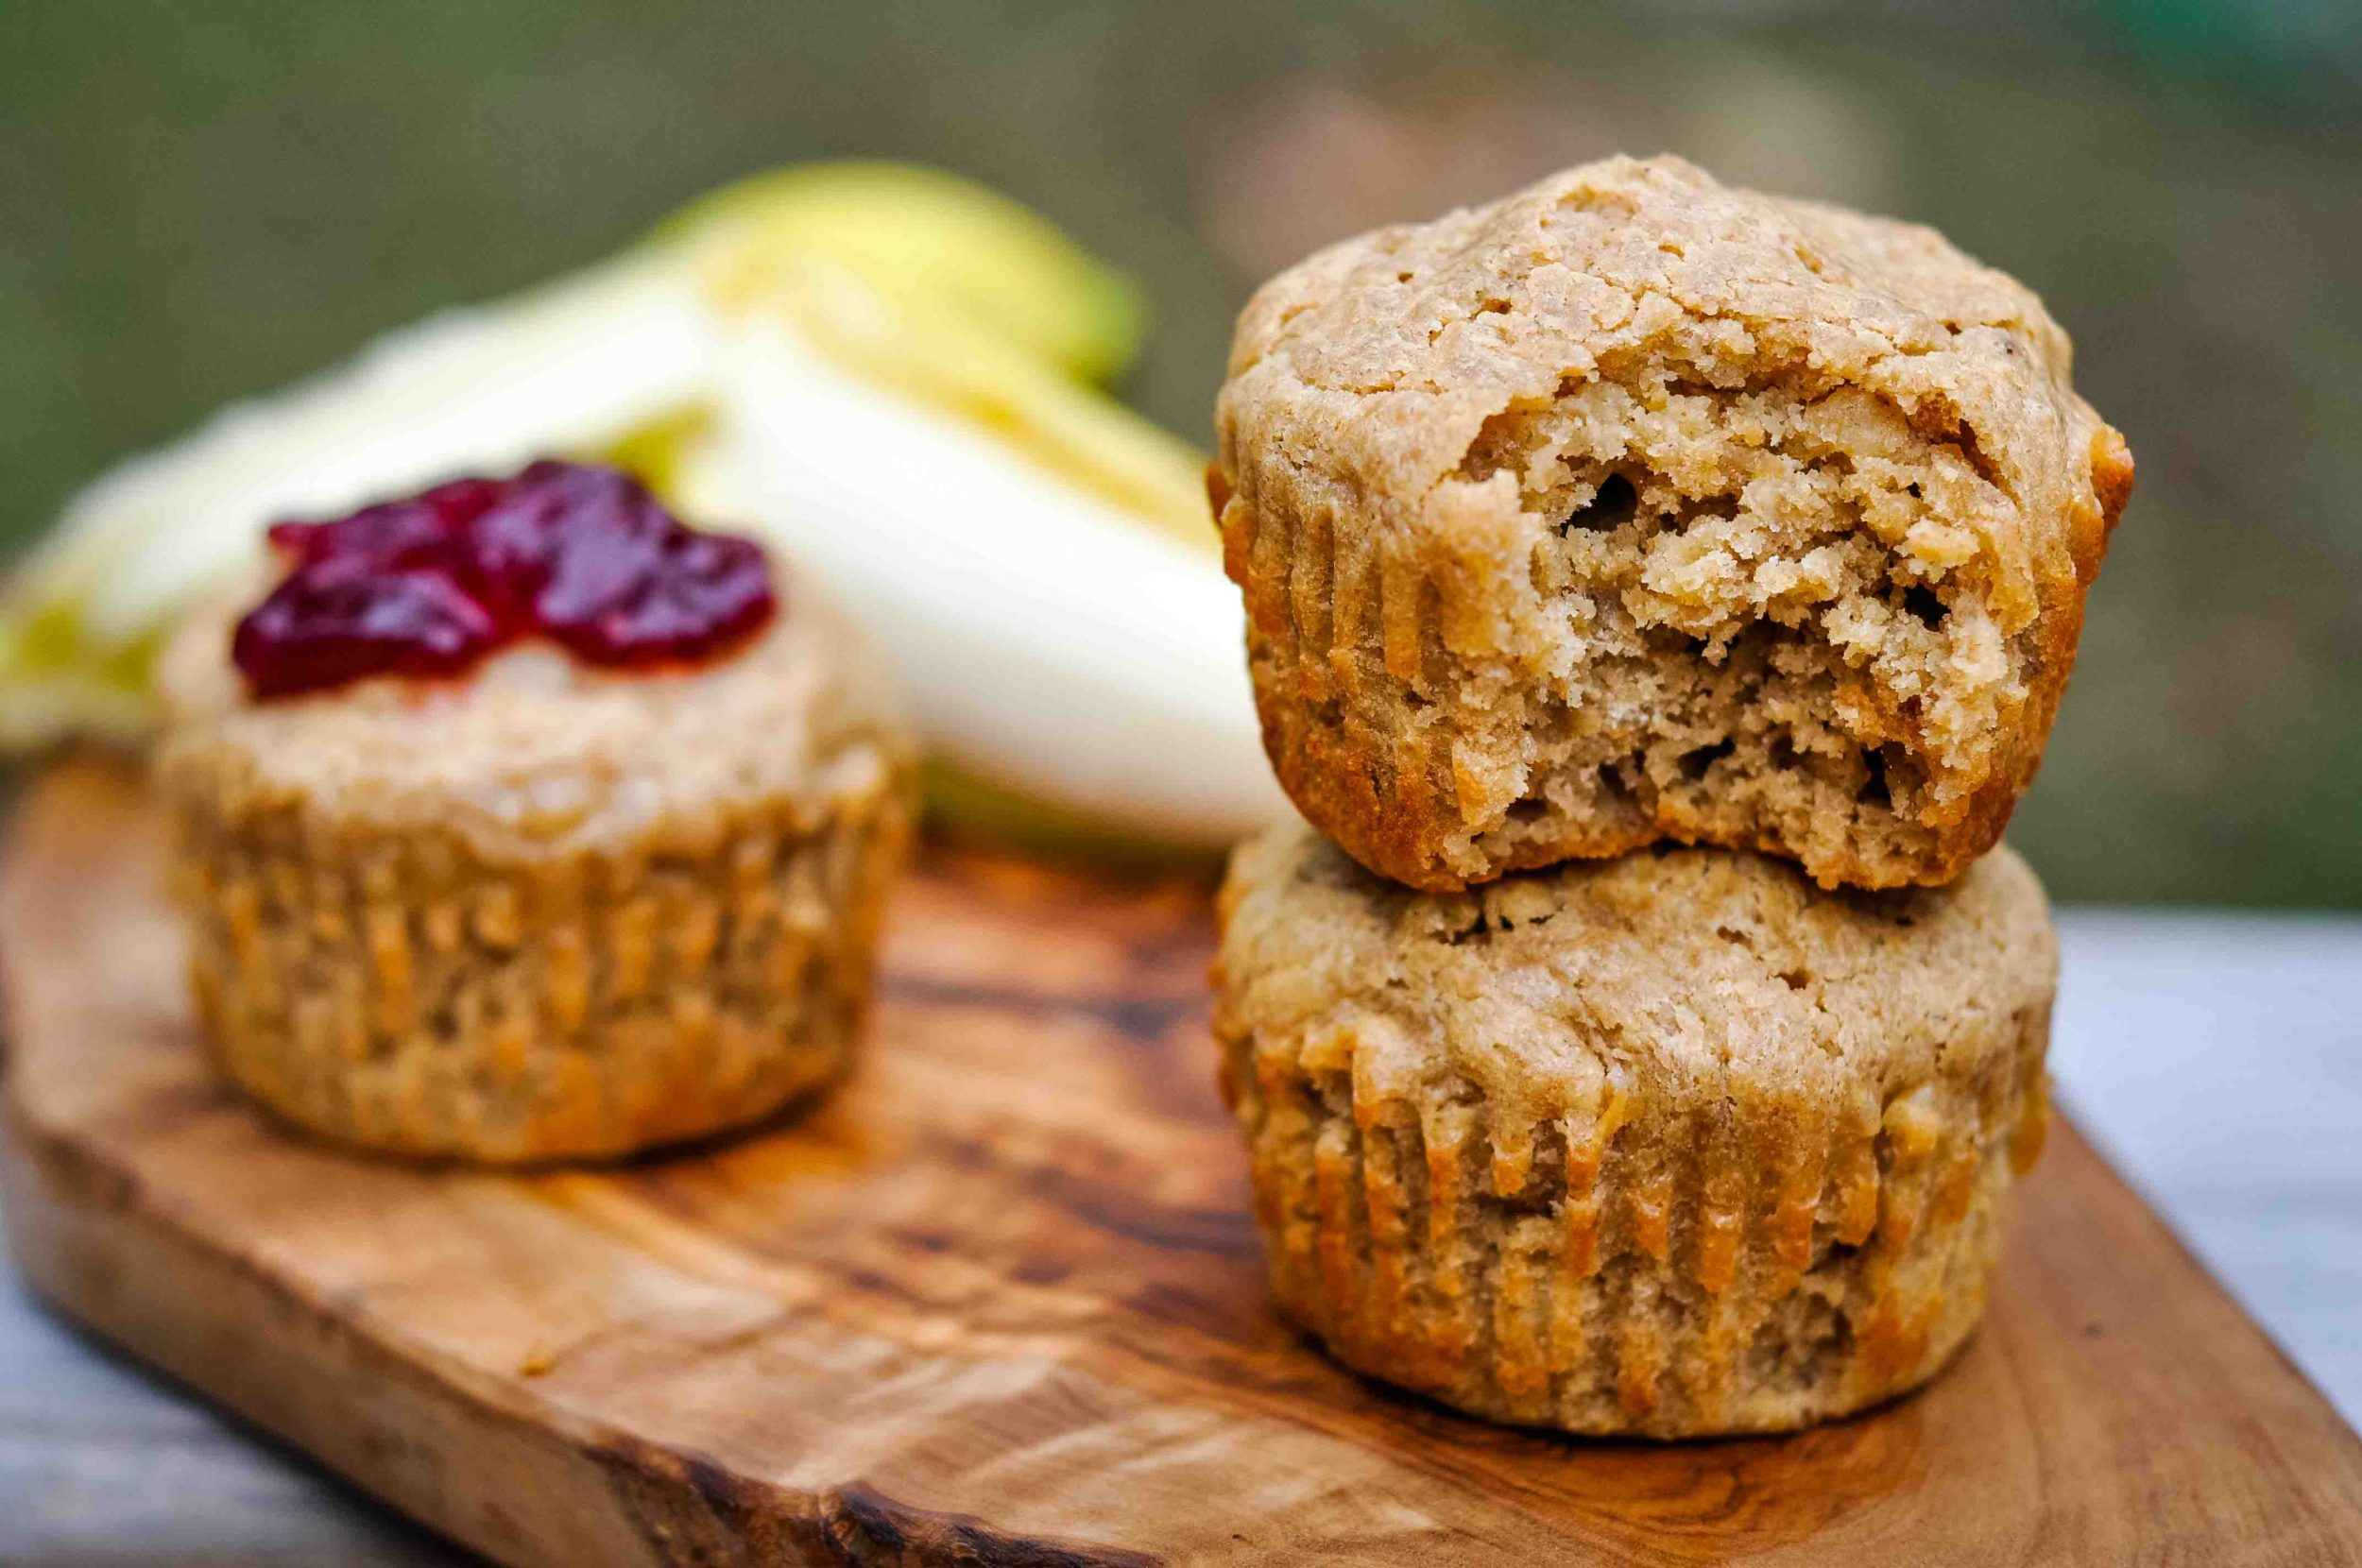 Healthy peanut butter banana muffins on a wooden board.